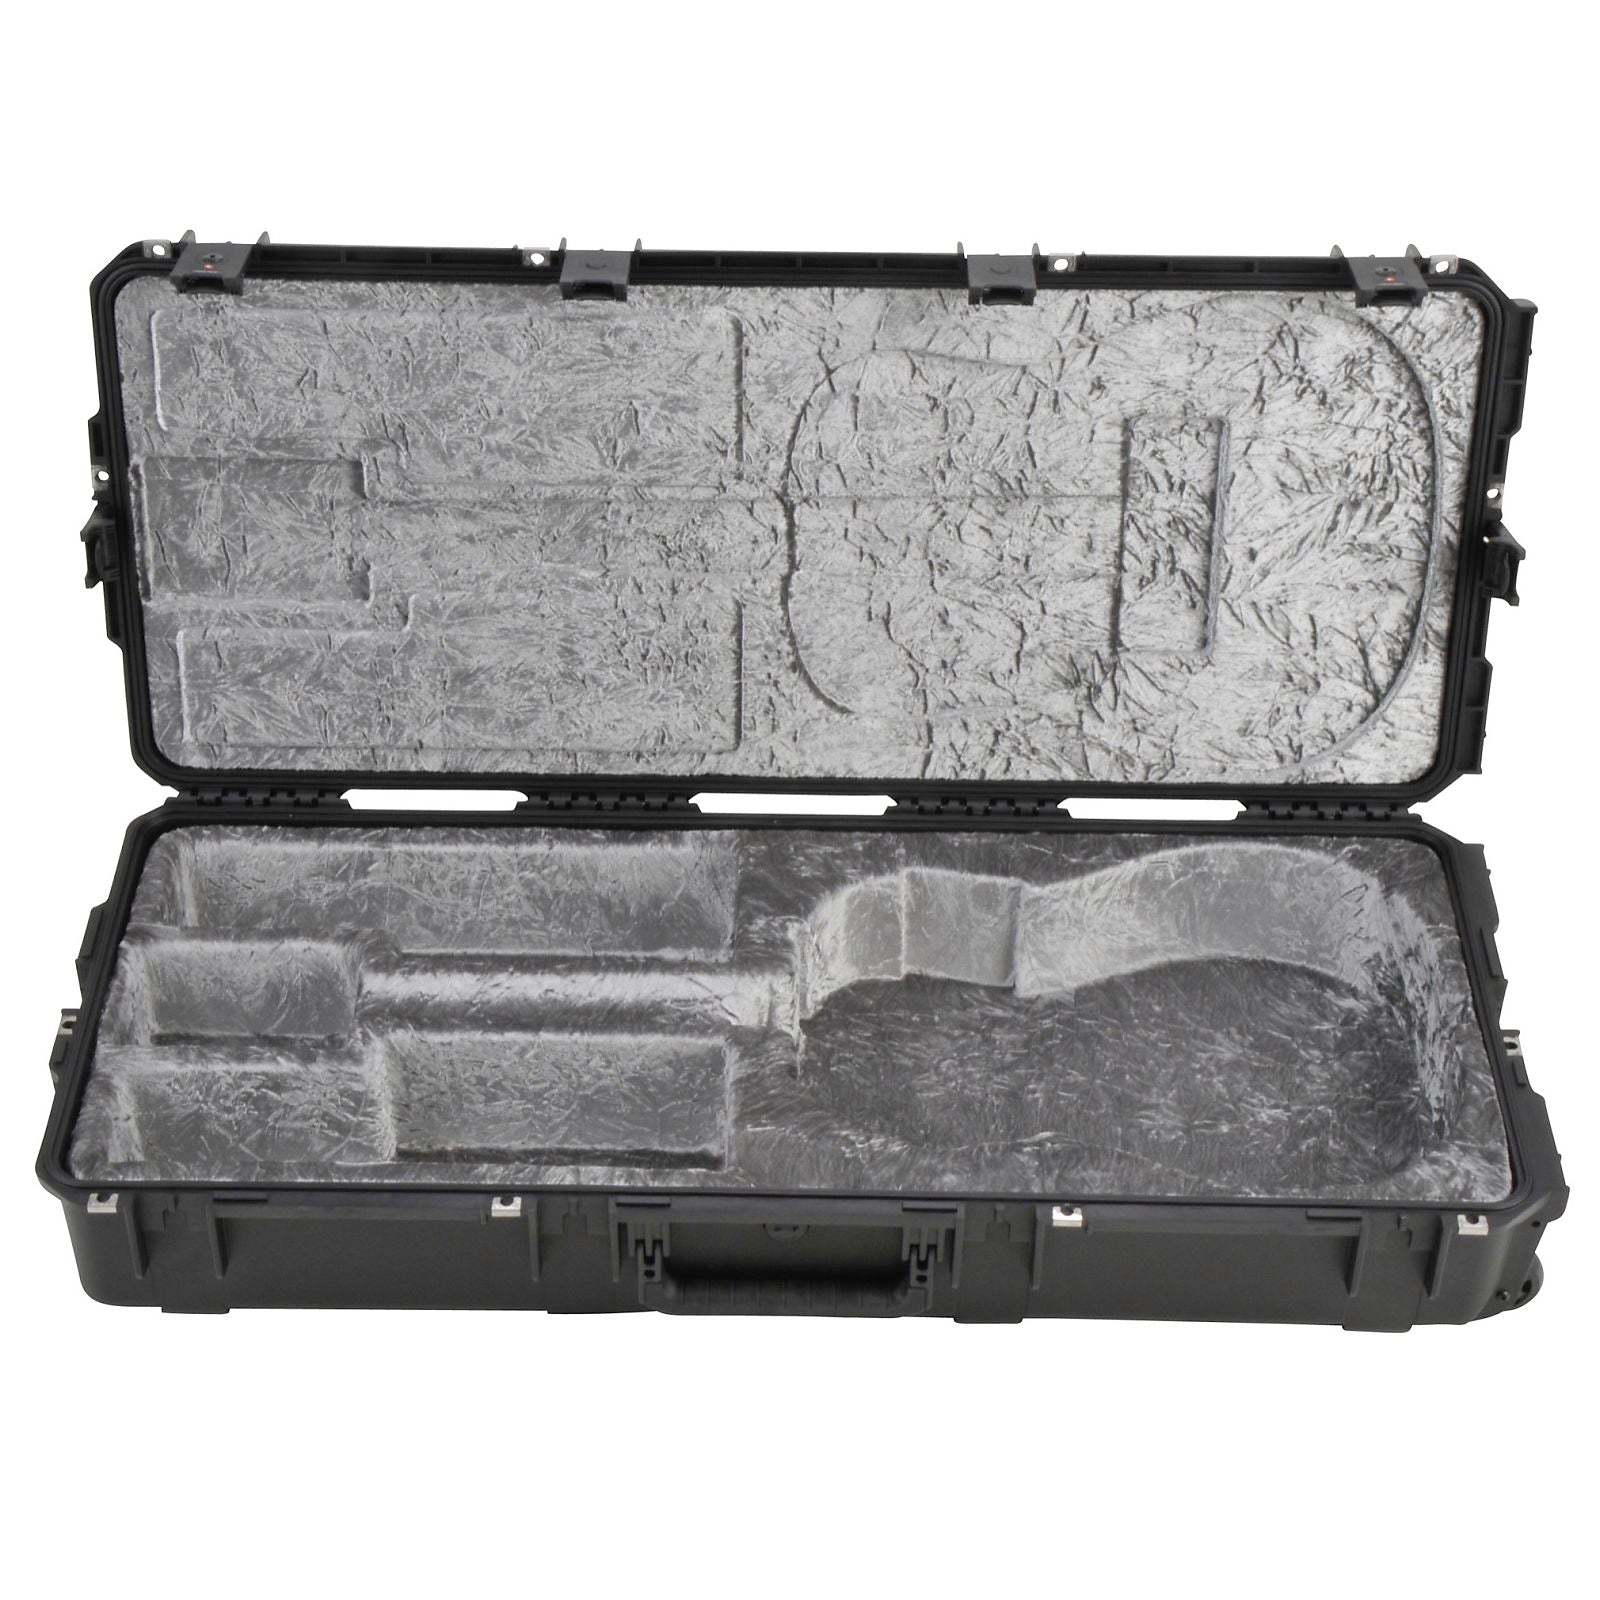 SKB 3i Series Waterproof Rolling Acoustic Guitar Case, Black, 3I-4217-18